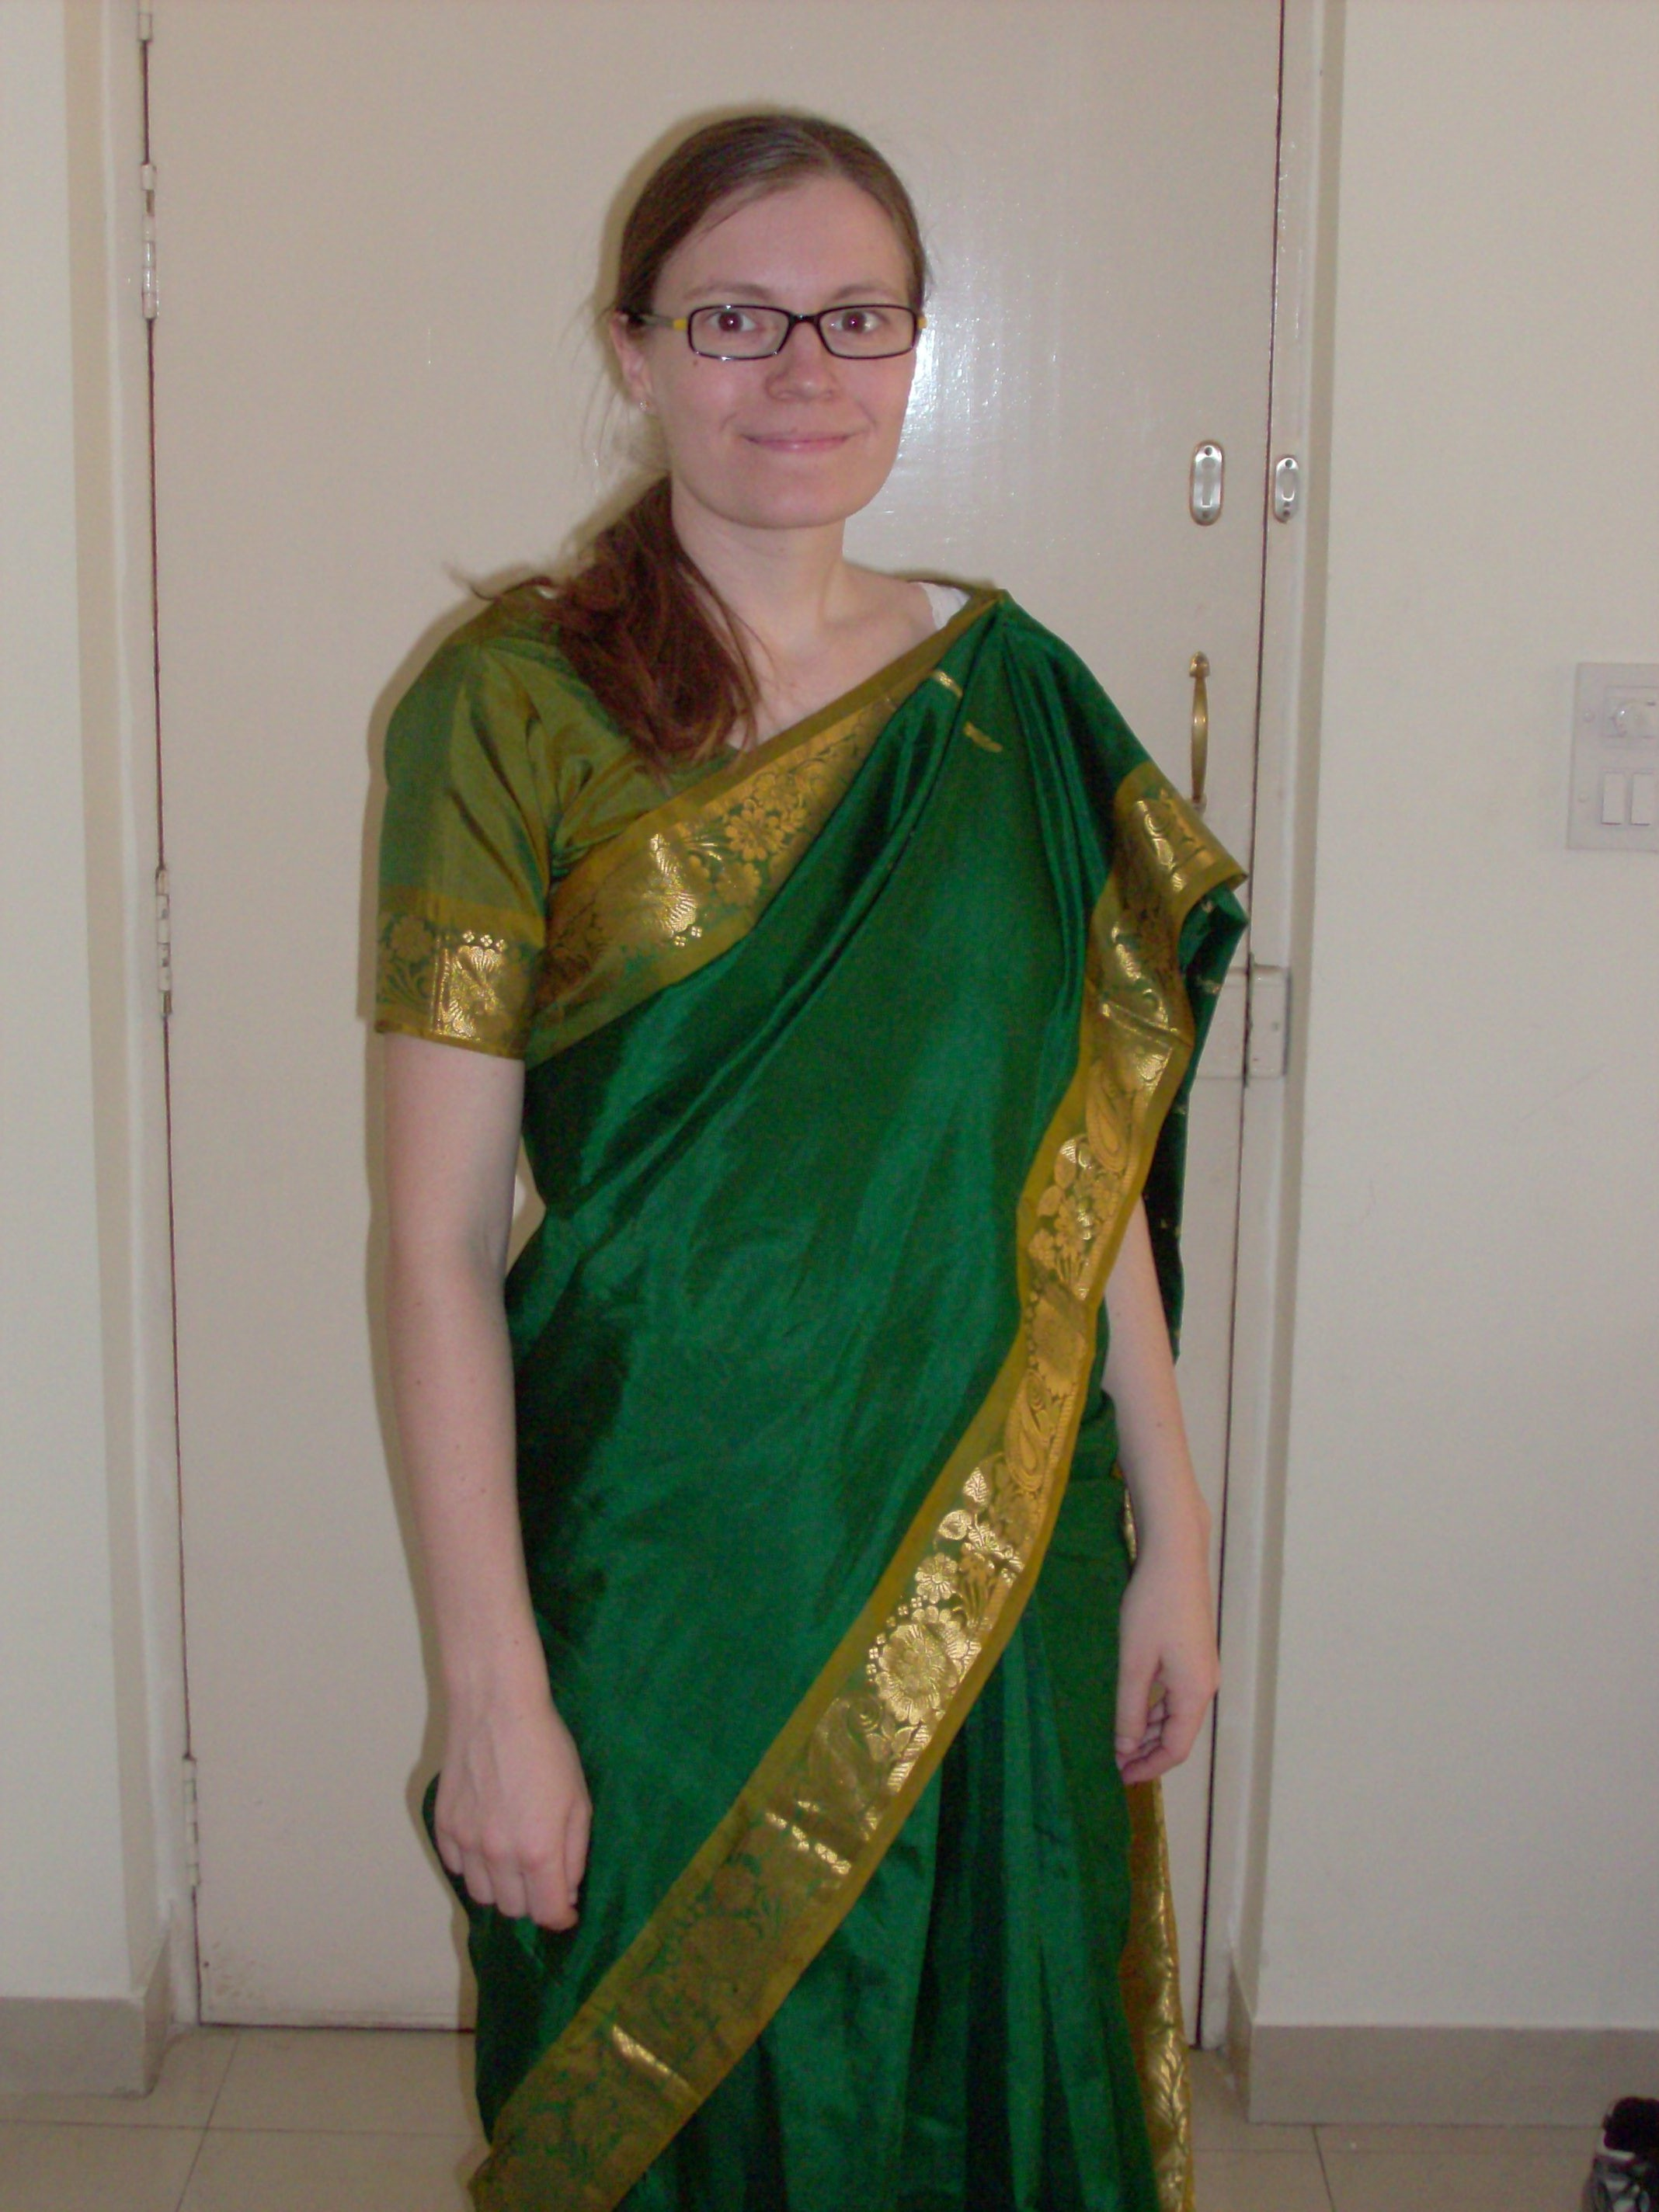 Frugal Foreigner: Sari on me